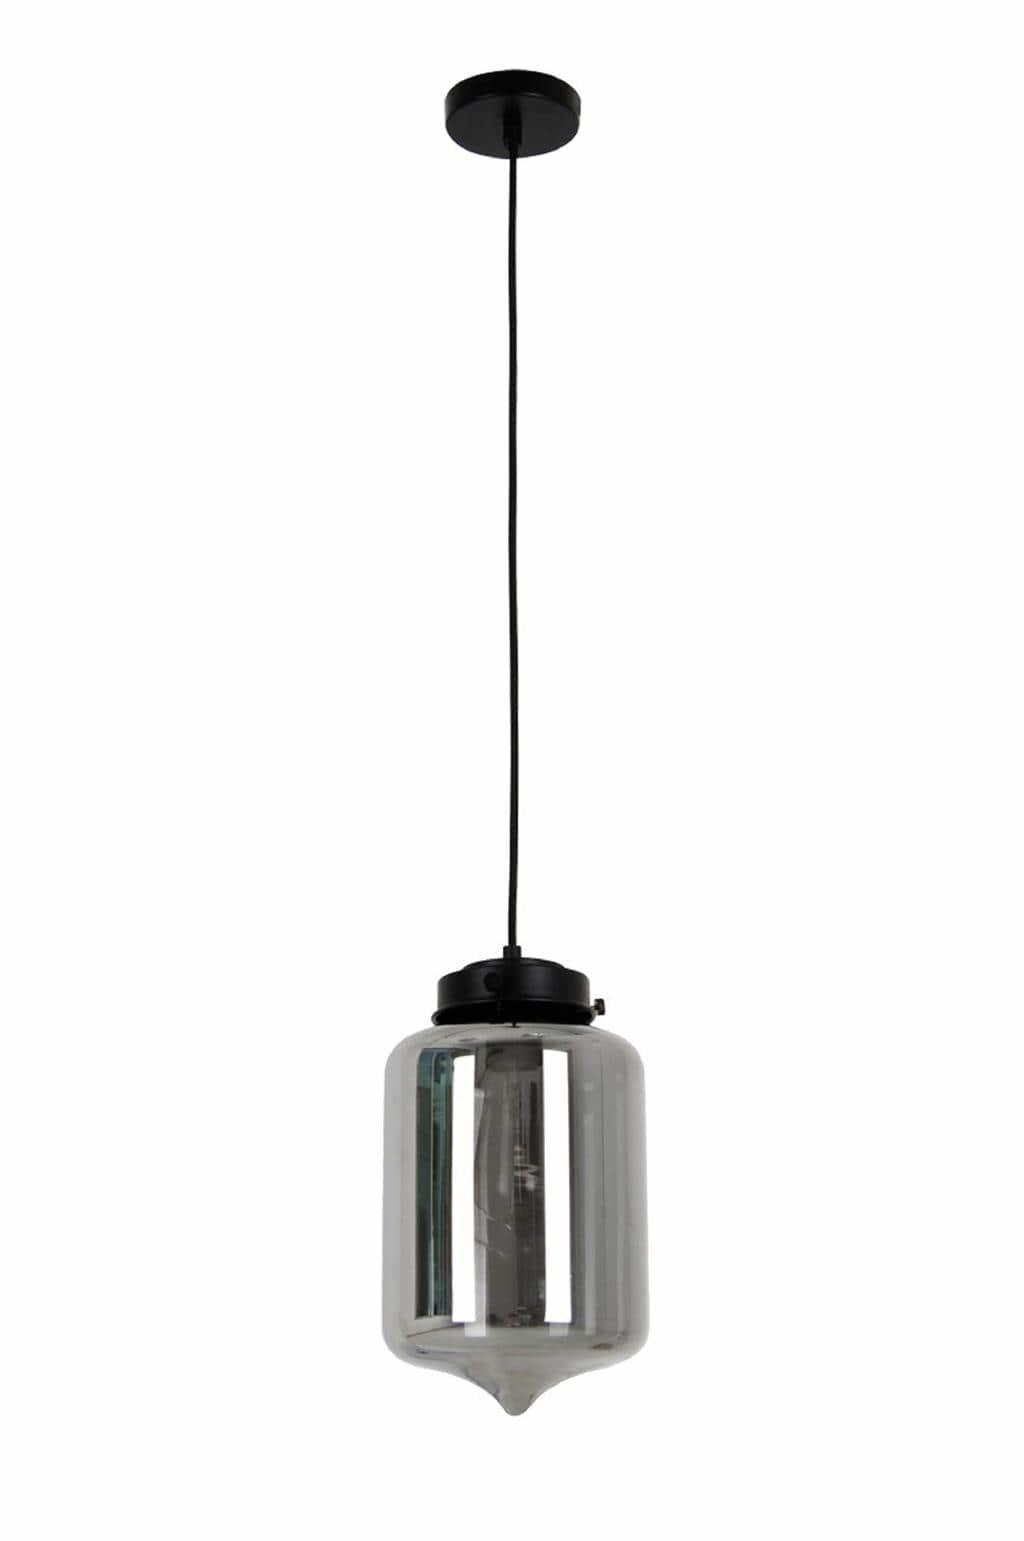 House Rules Trend Watch Pendant Lights